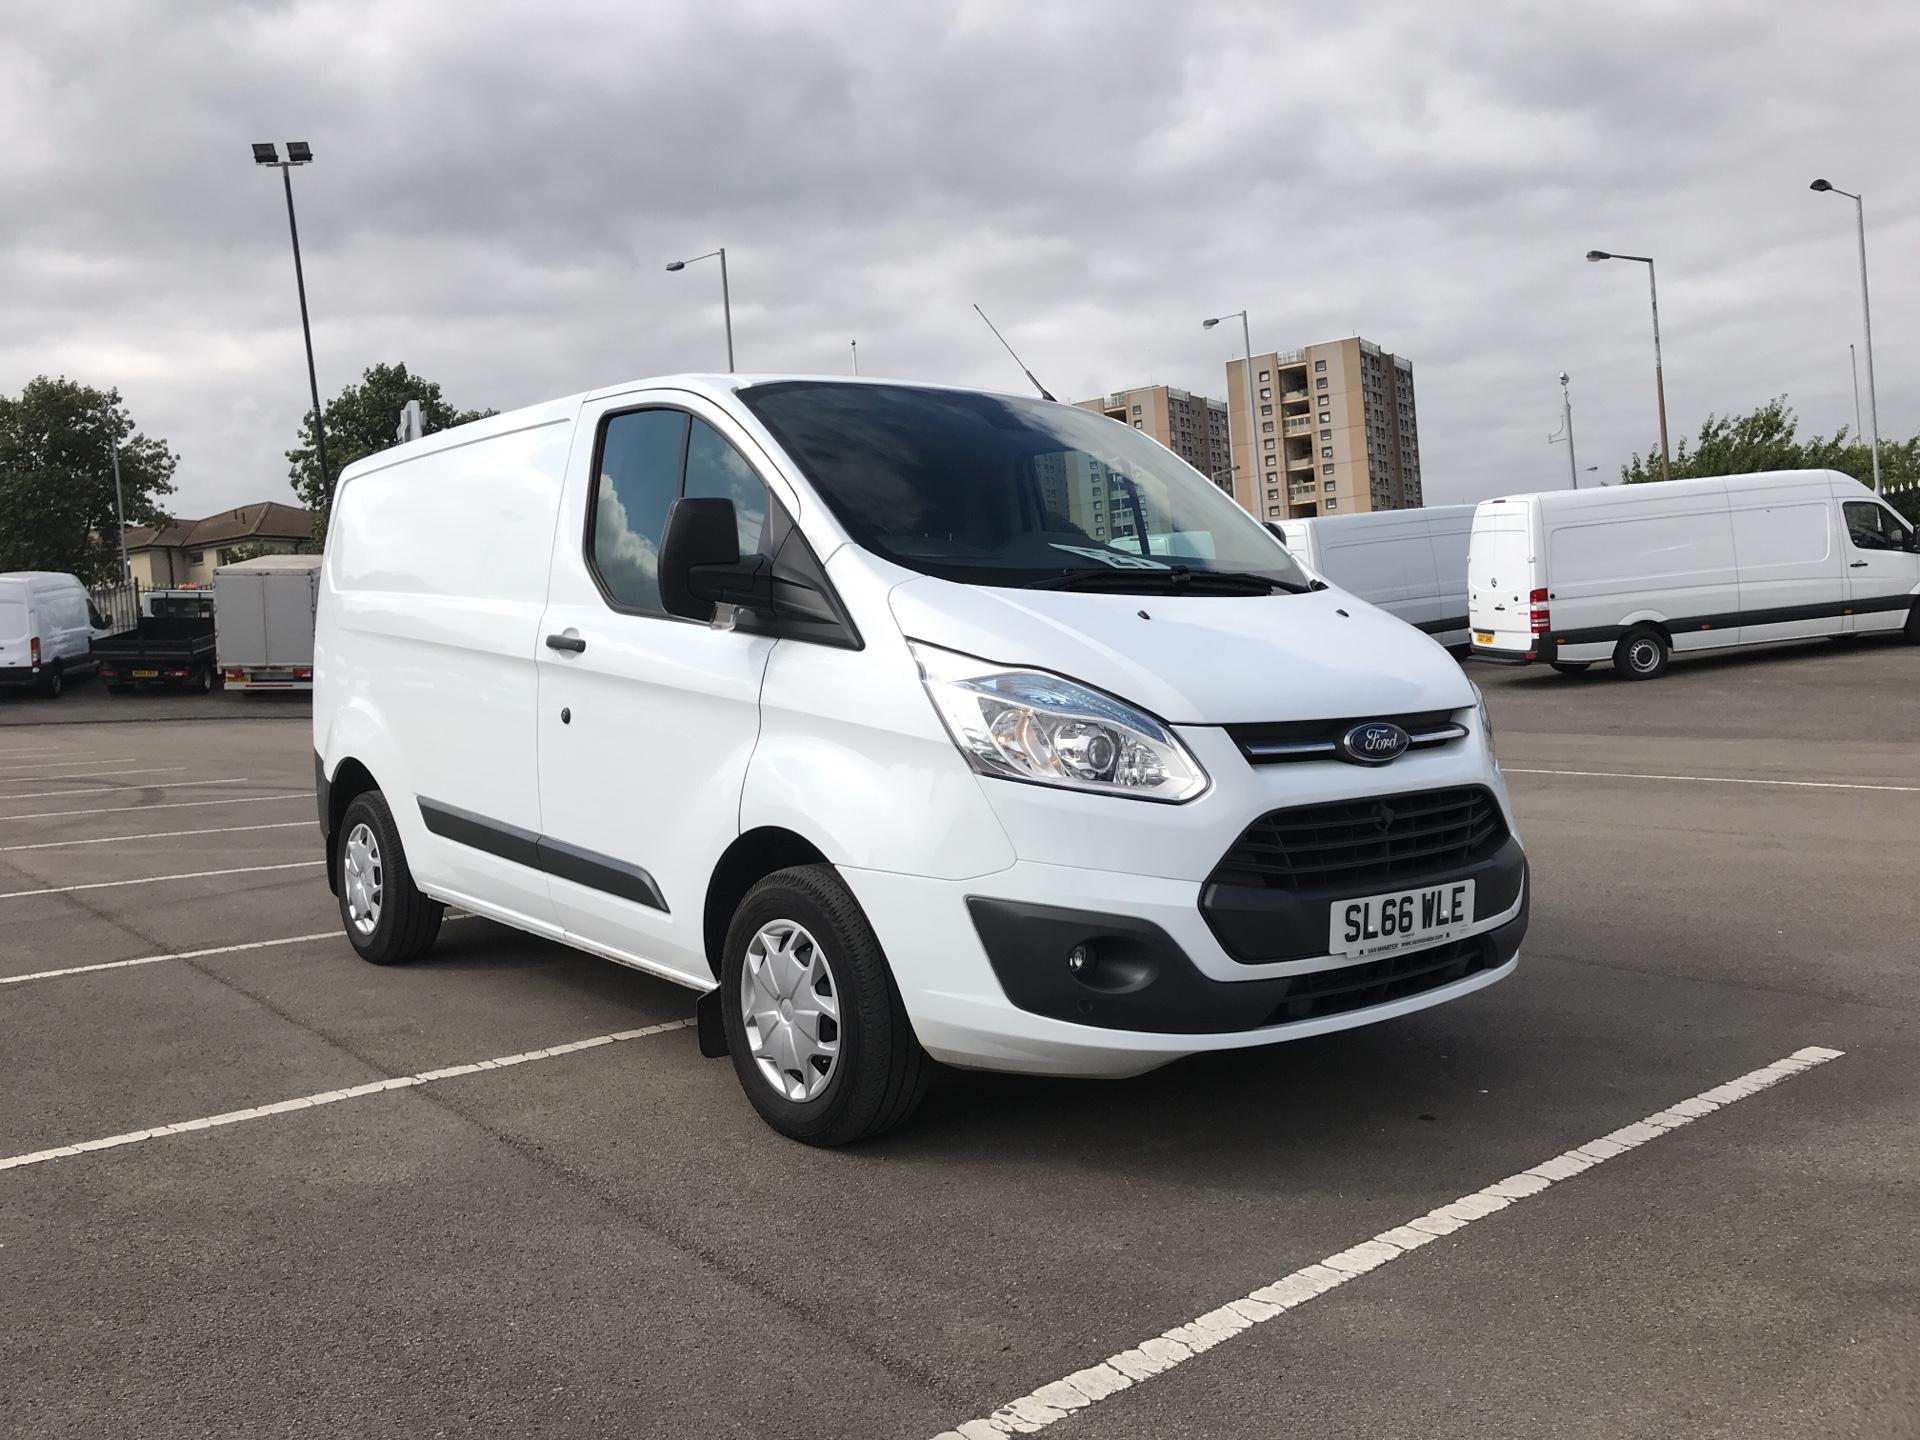 2016 Ford Transit Custom 2.2 Tdci 125Ps Low Roof Trend Van EURO 6 (SL66WLE)